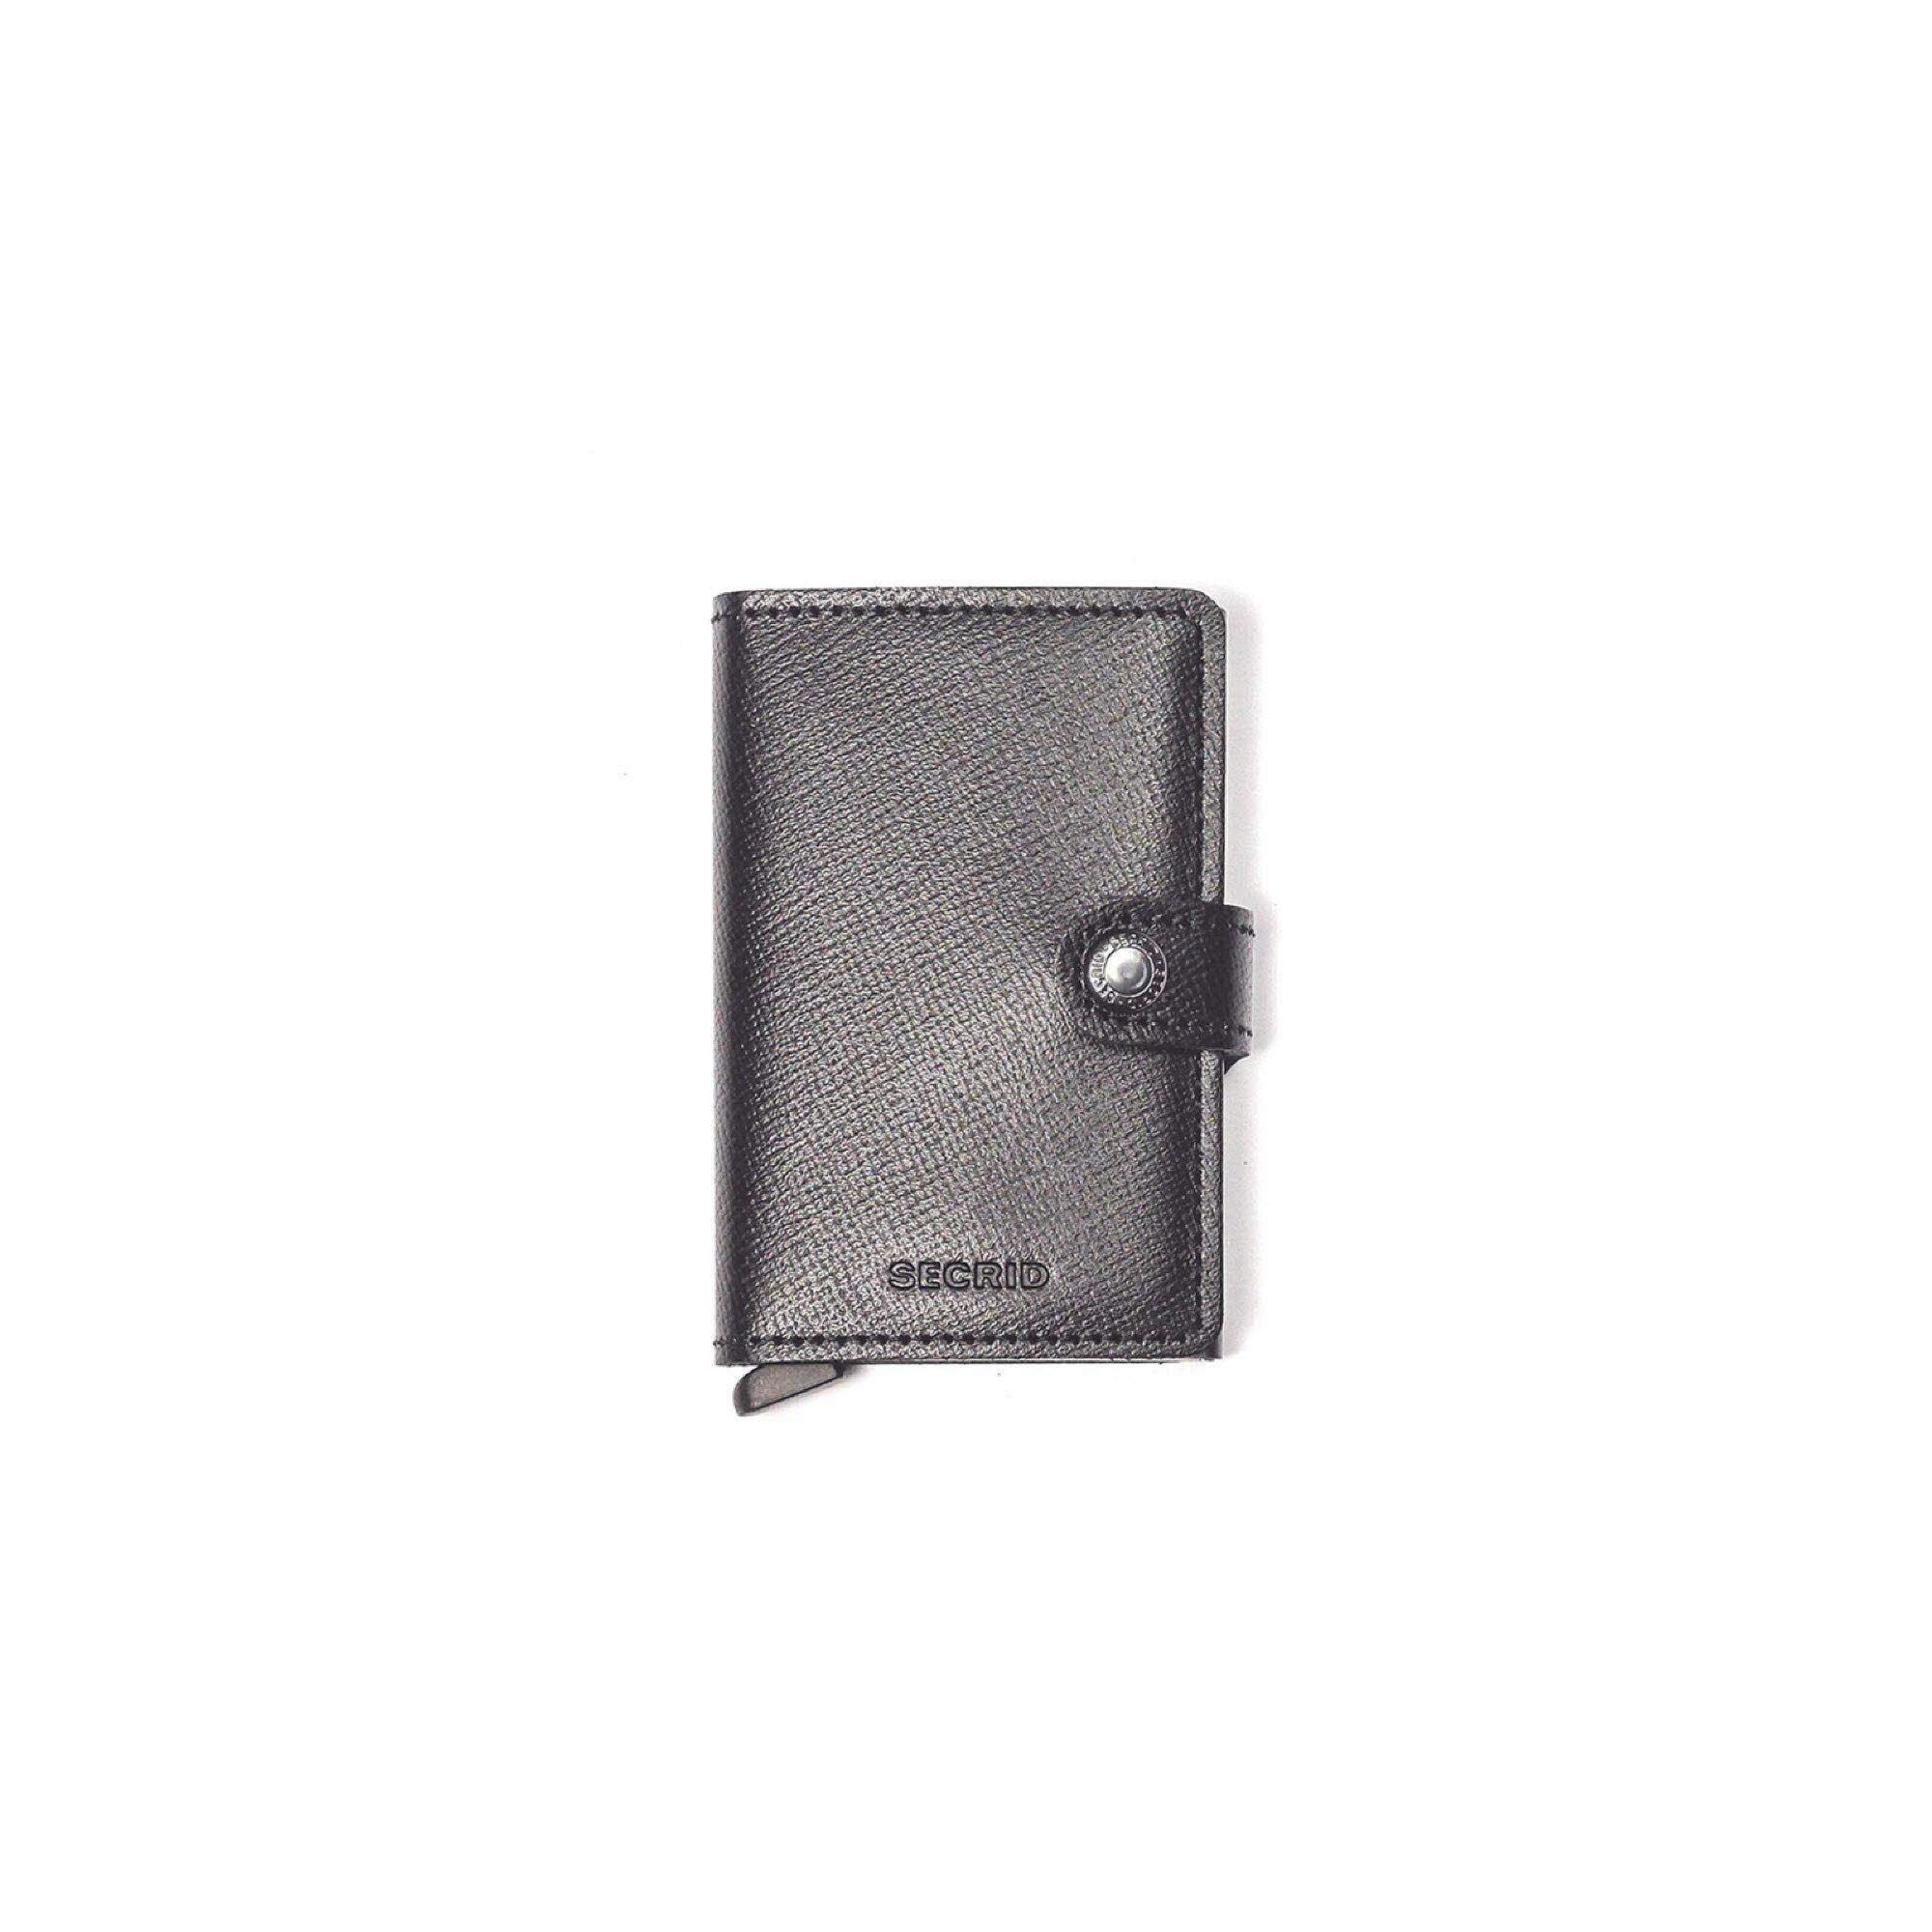 Secrid mini wallet genuine black leather with RFID protection / with one click all cards slide out gradually